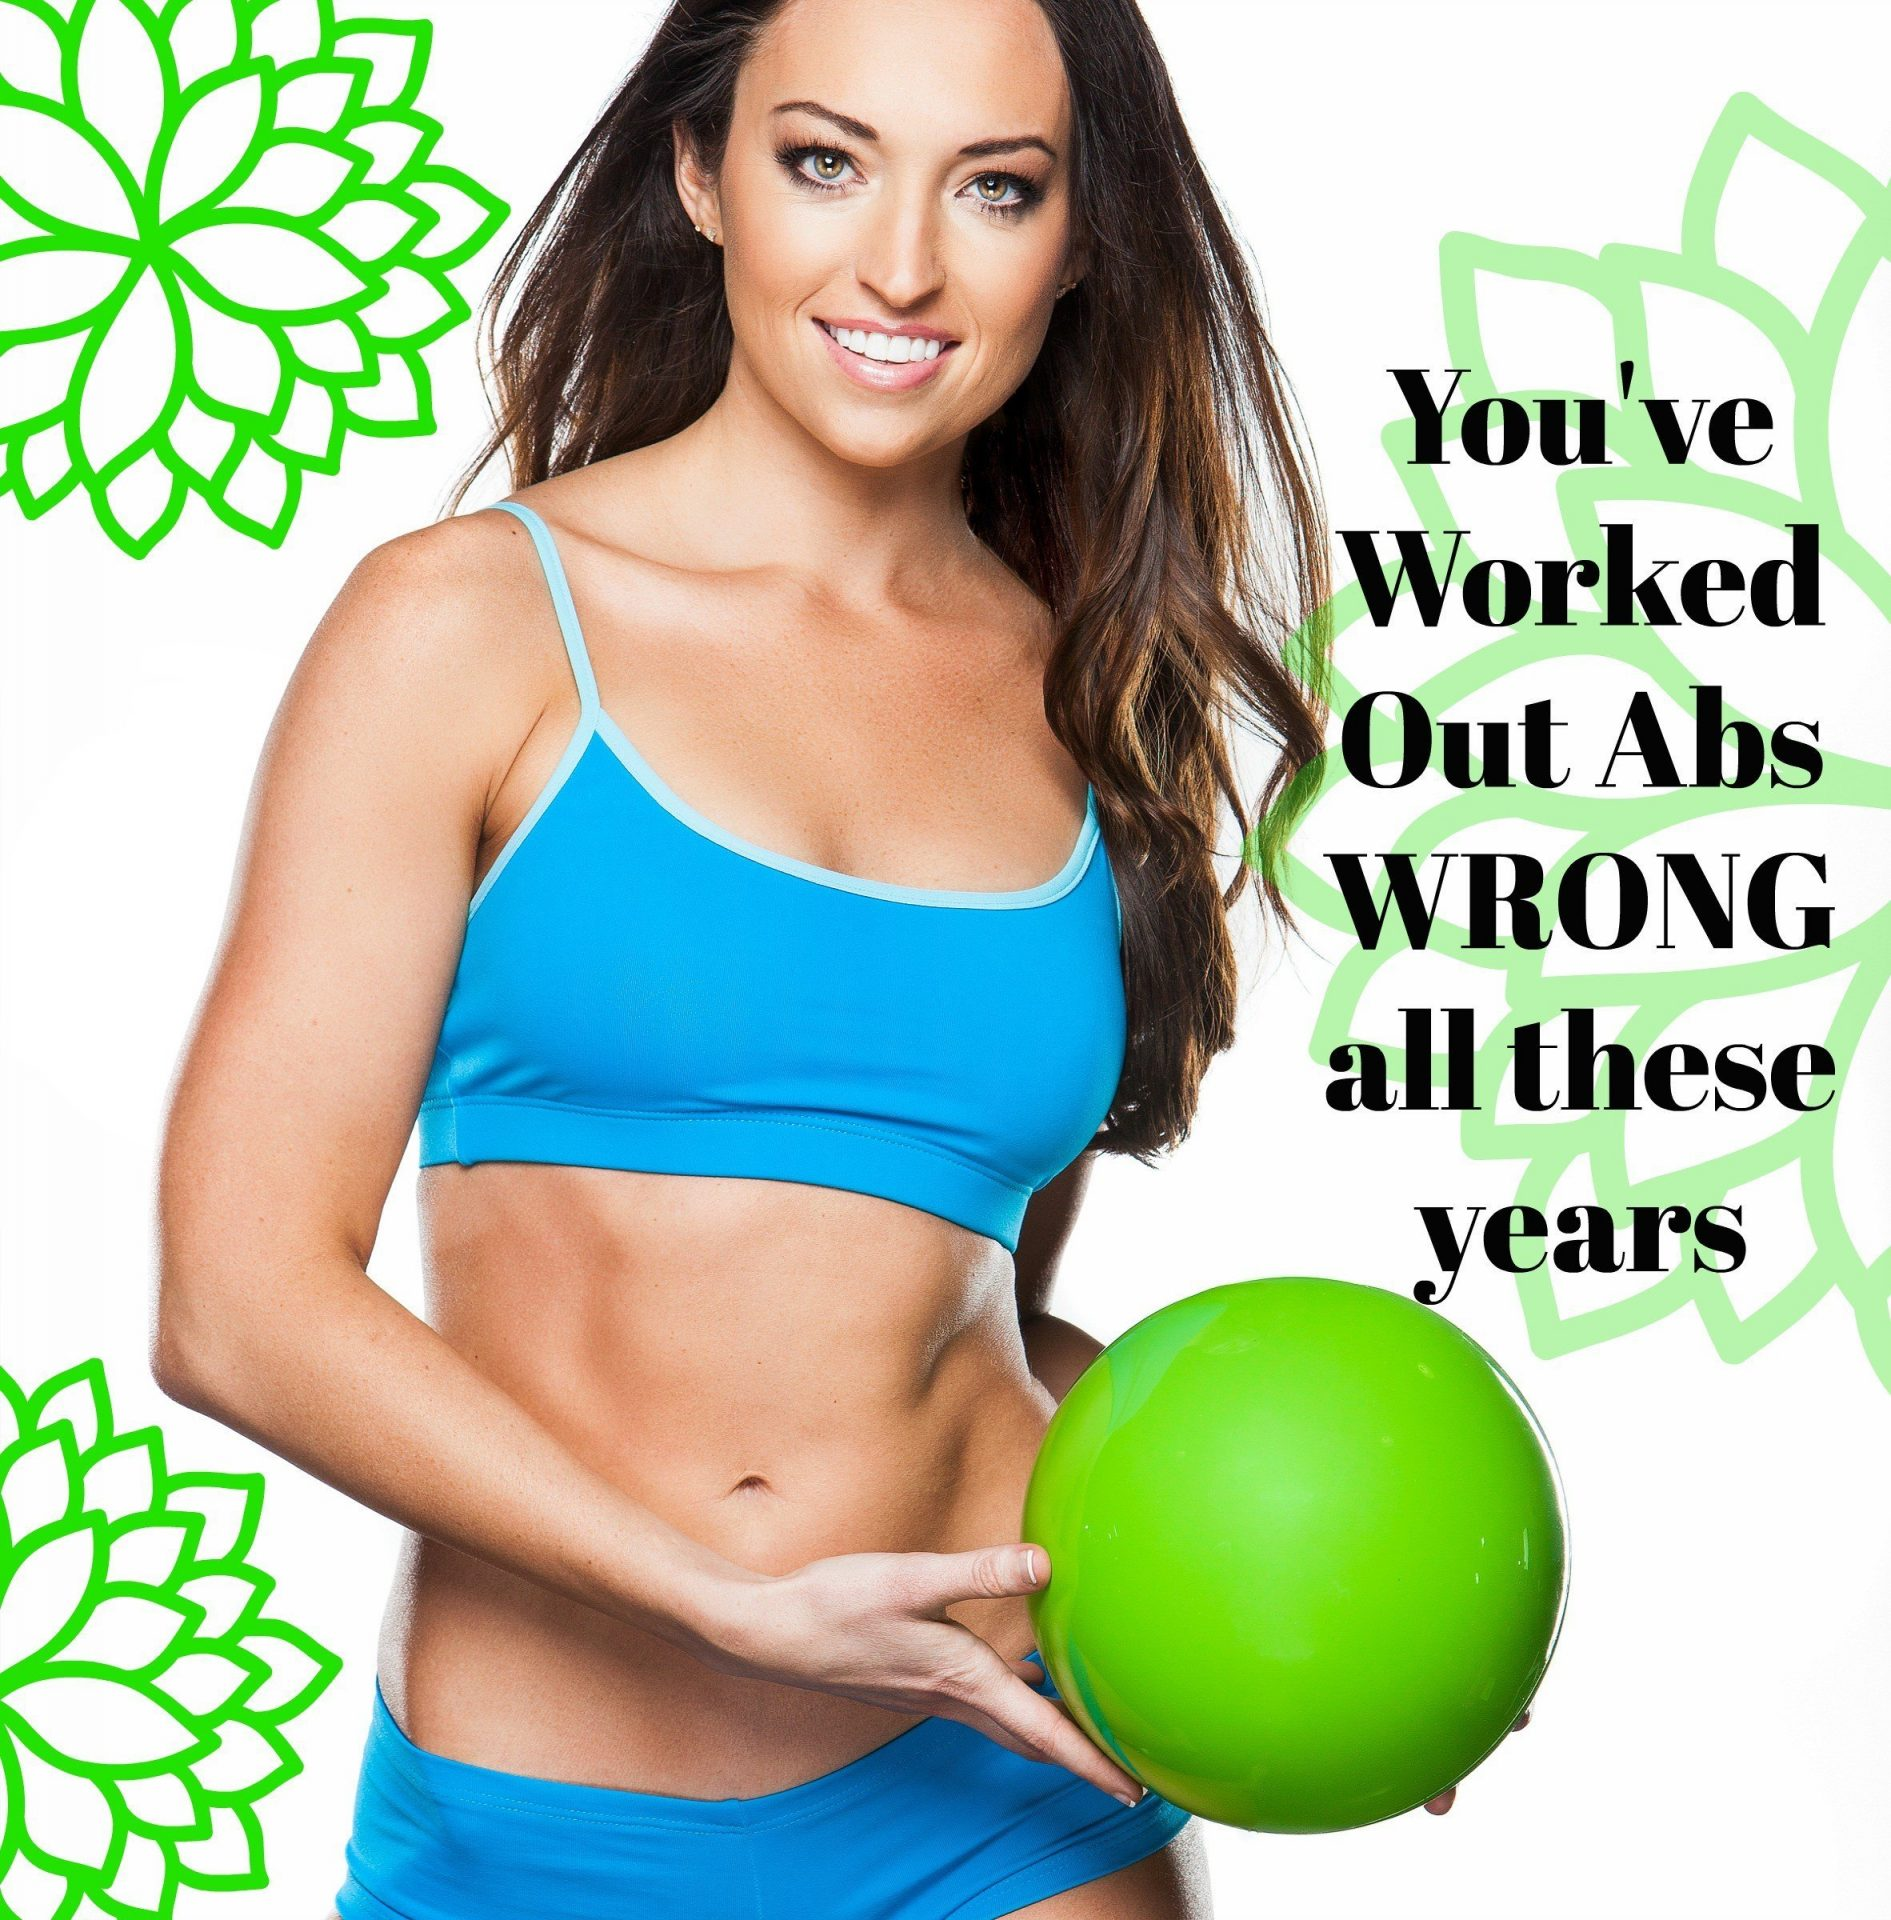 you've worked out abs wrong